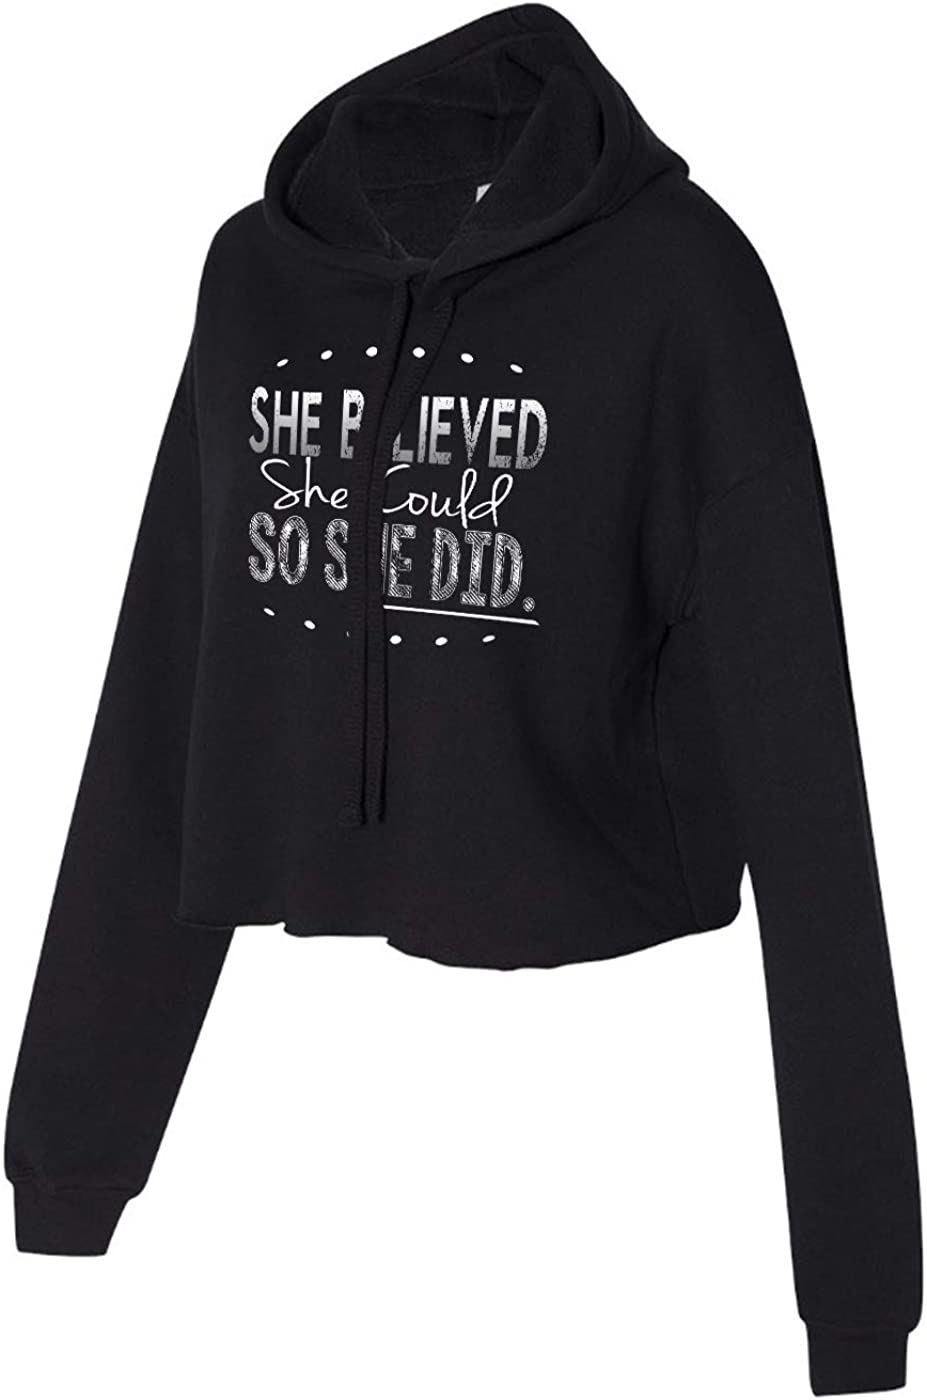 Running On The Wall She Believed she Could so she did Cropped Hoodie for Athletic Teen Girl